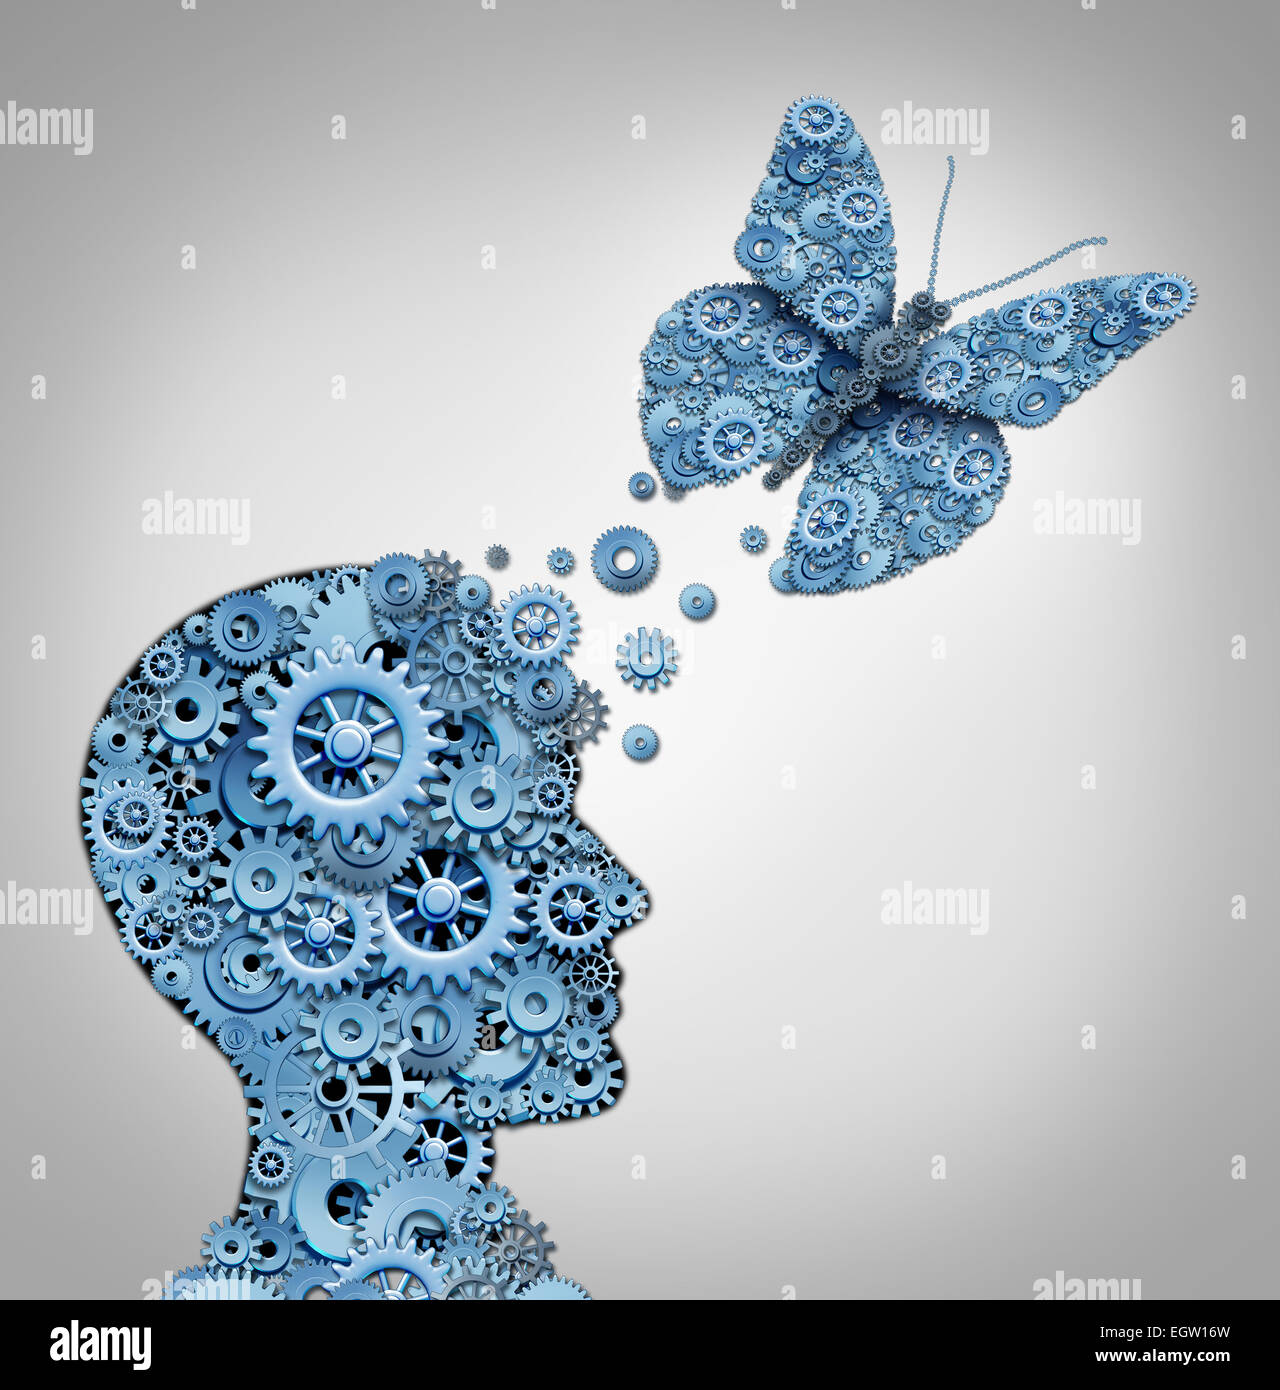 Human Thinking And Artificial Intelligence Concept As A